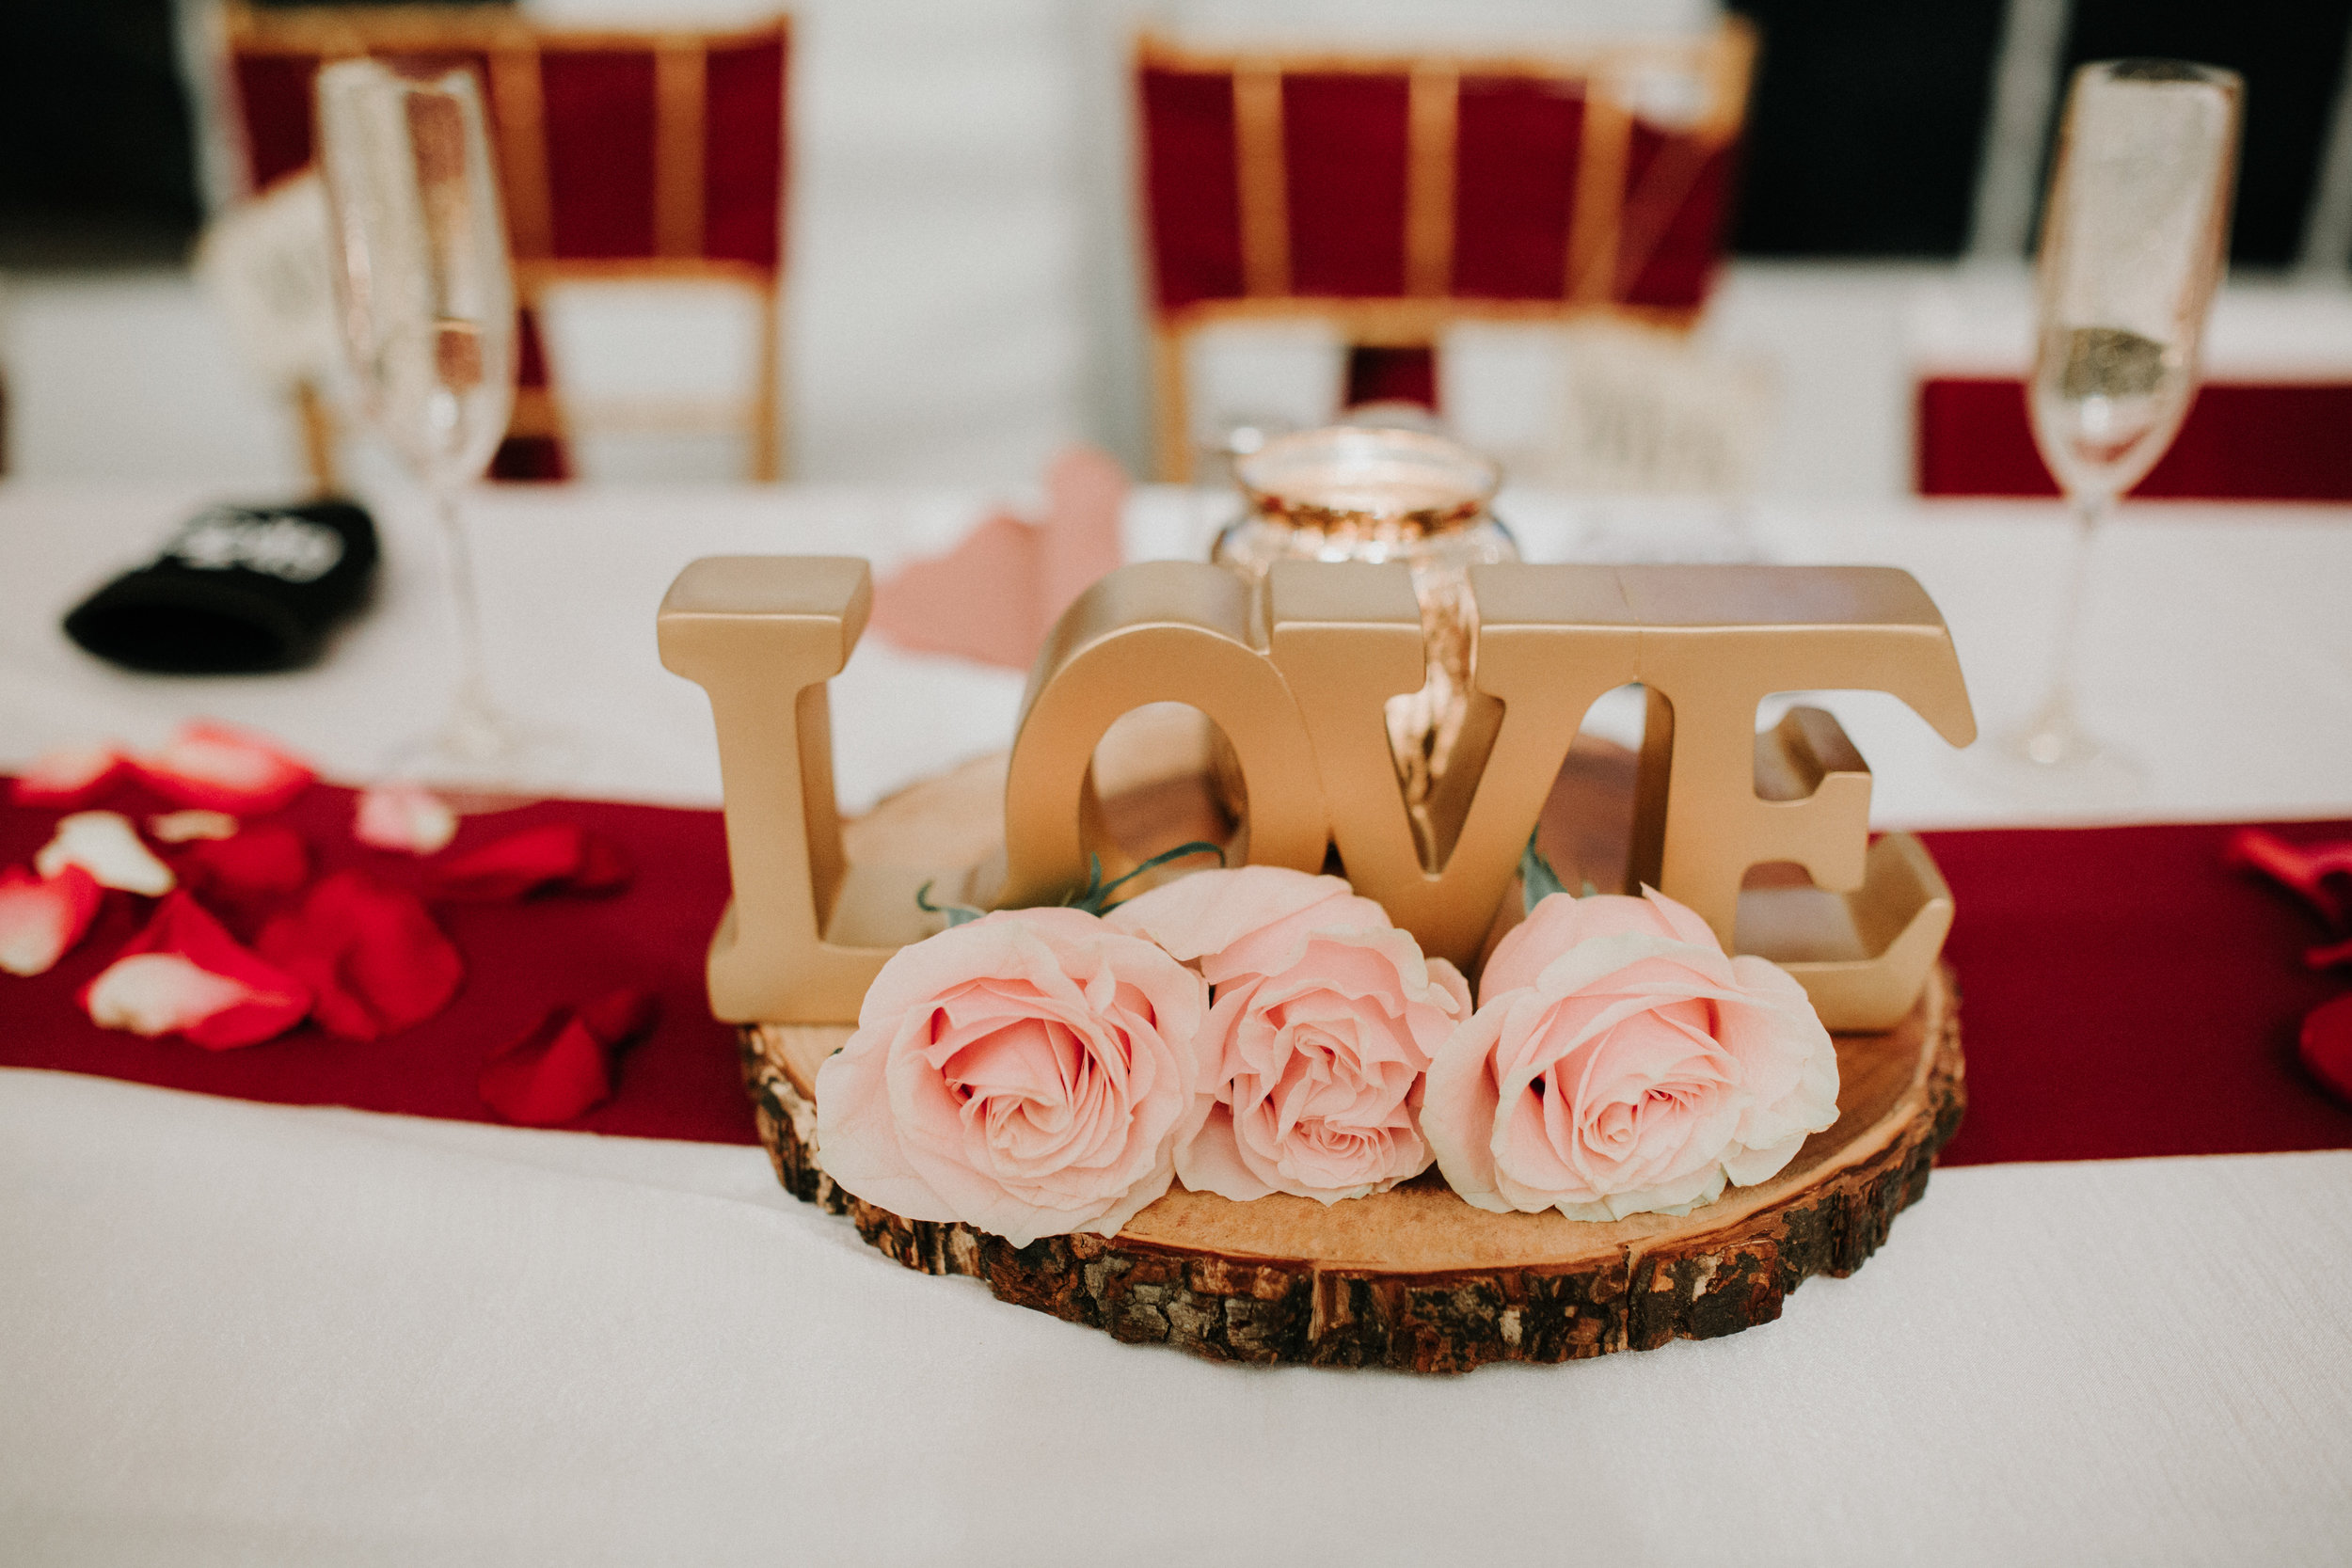 Gorgeous Simple Wedding Centerpieces - Dara's Garden Knoxville East Tennessee Wedding — The Overwhelmed Bride Wedding Blog